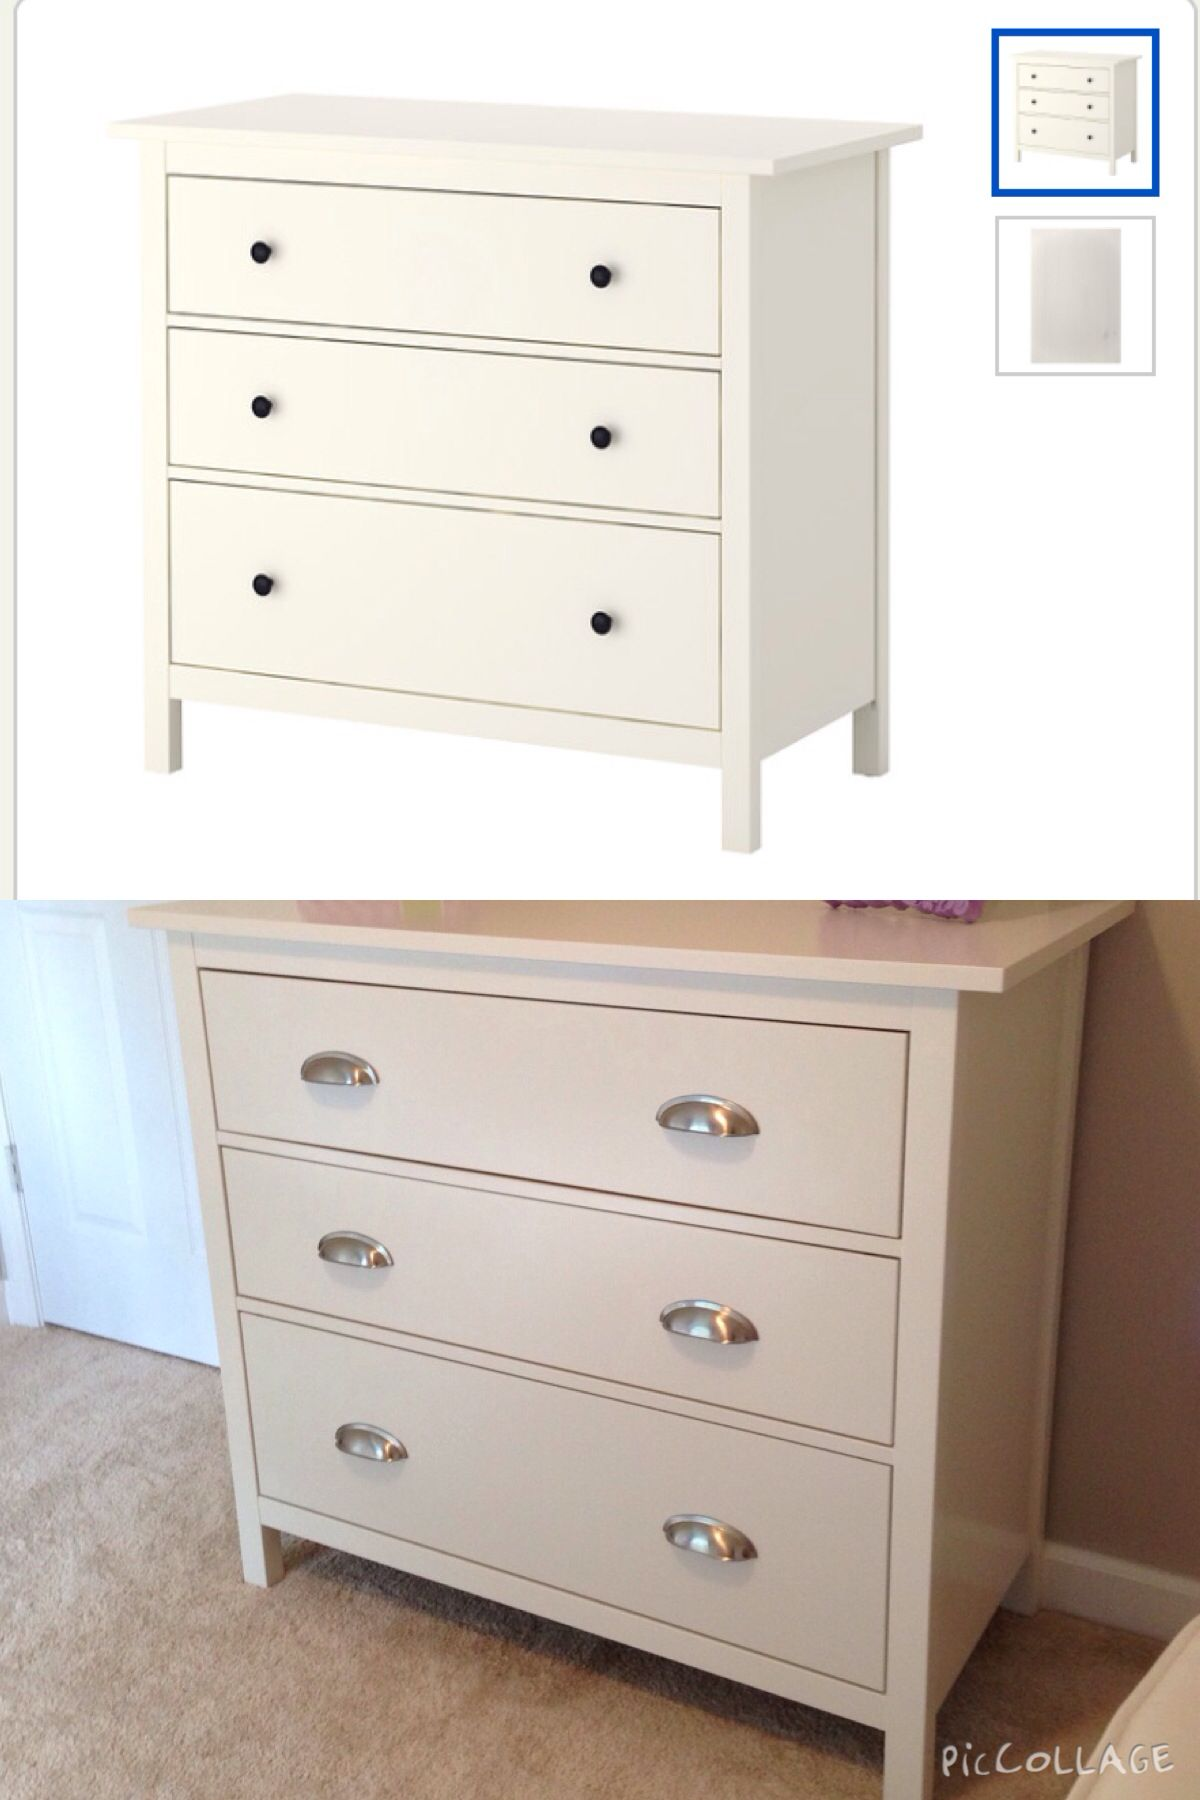 Before and after updated knobs hardware IKEA Hemnes 3 drawer white dresser with updated